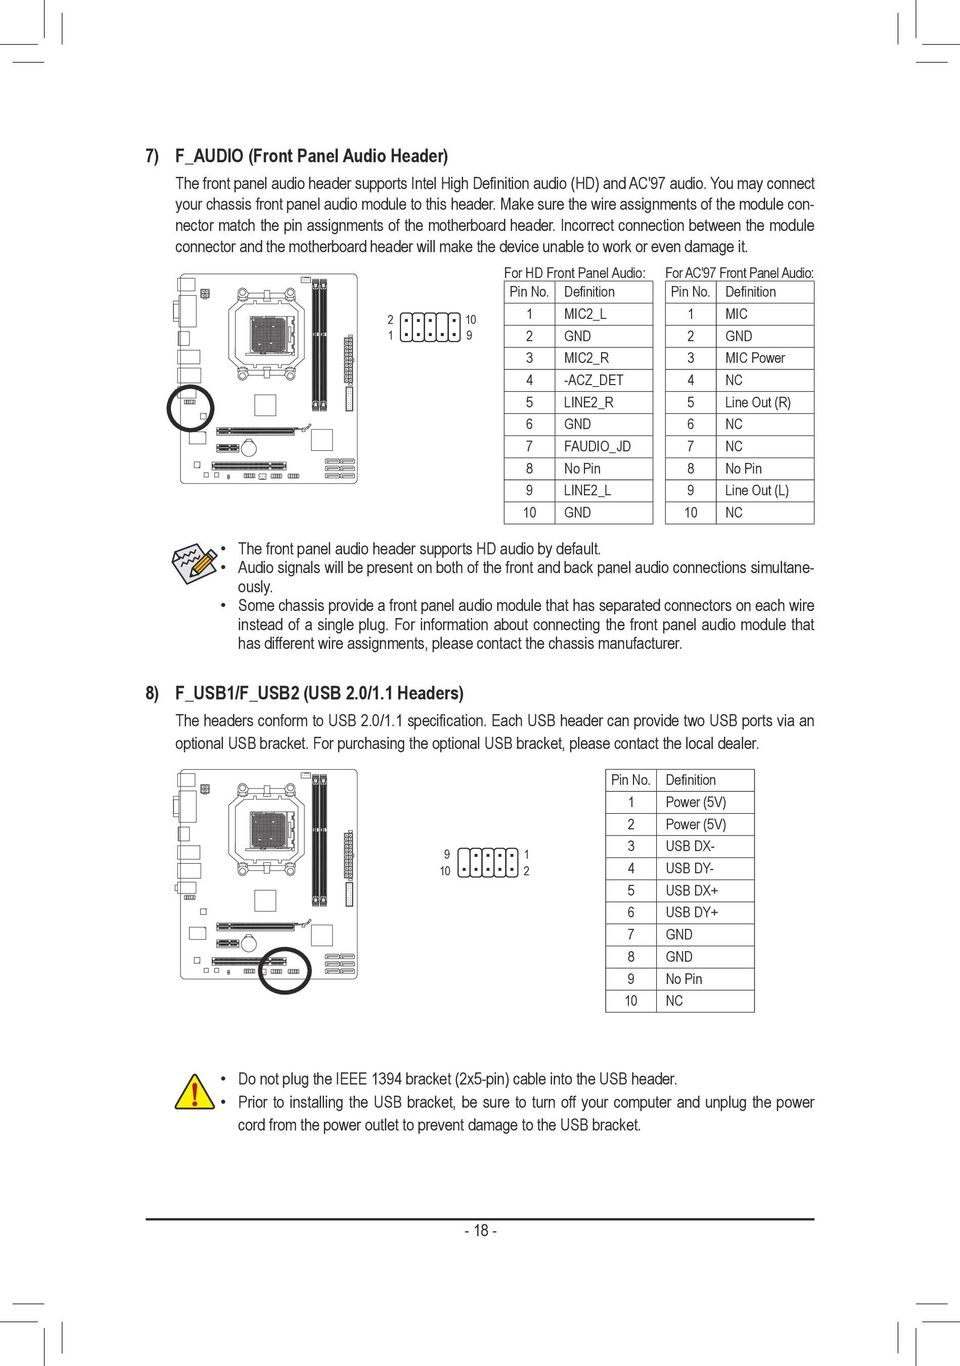 Ga 880gm D2h Users Manual Rev Me 880gd2h 4001r Pdf Wiring Front Panel Usb Also With Motherboard Connector Incorrect Connection Between The Module And Header Will Make Device Unable To